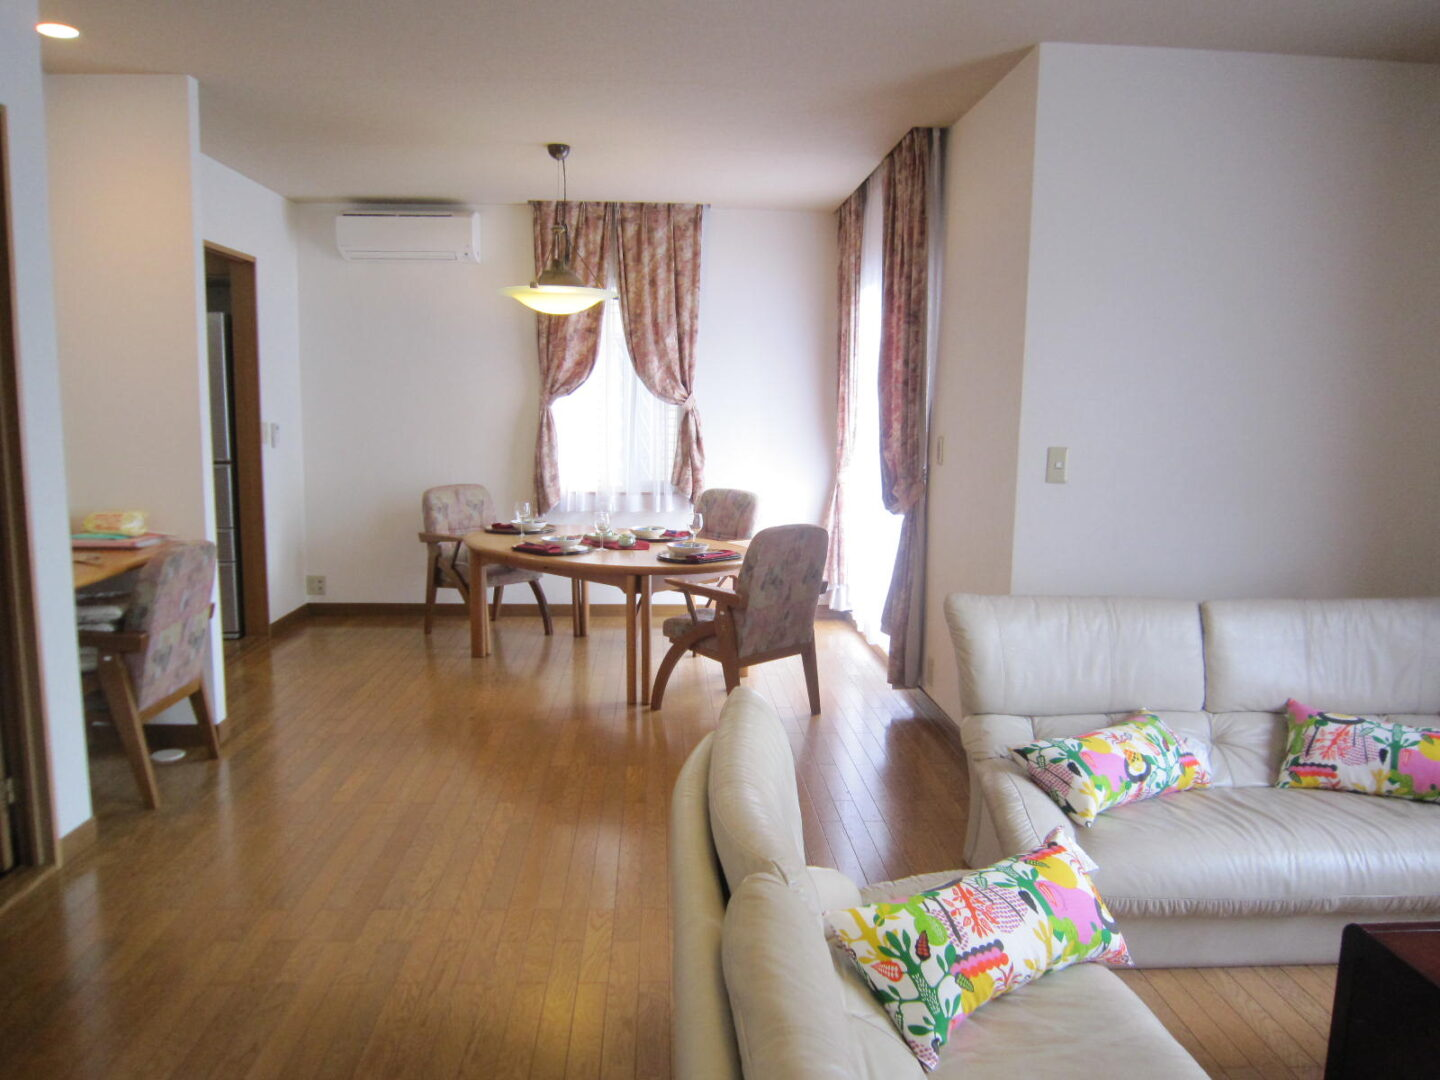 Furnished House in Rokko Isaland with 2 car parking space!